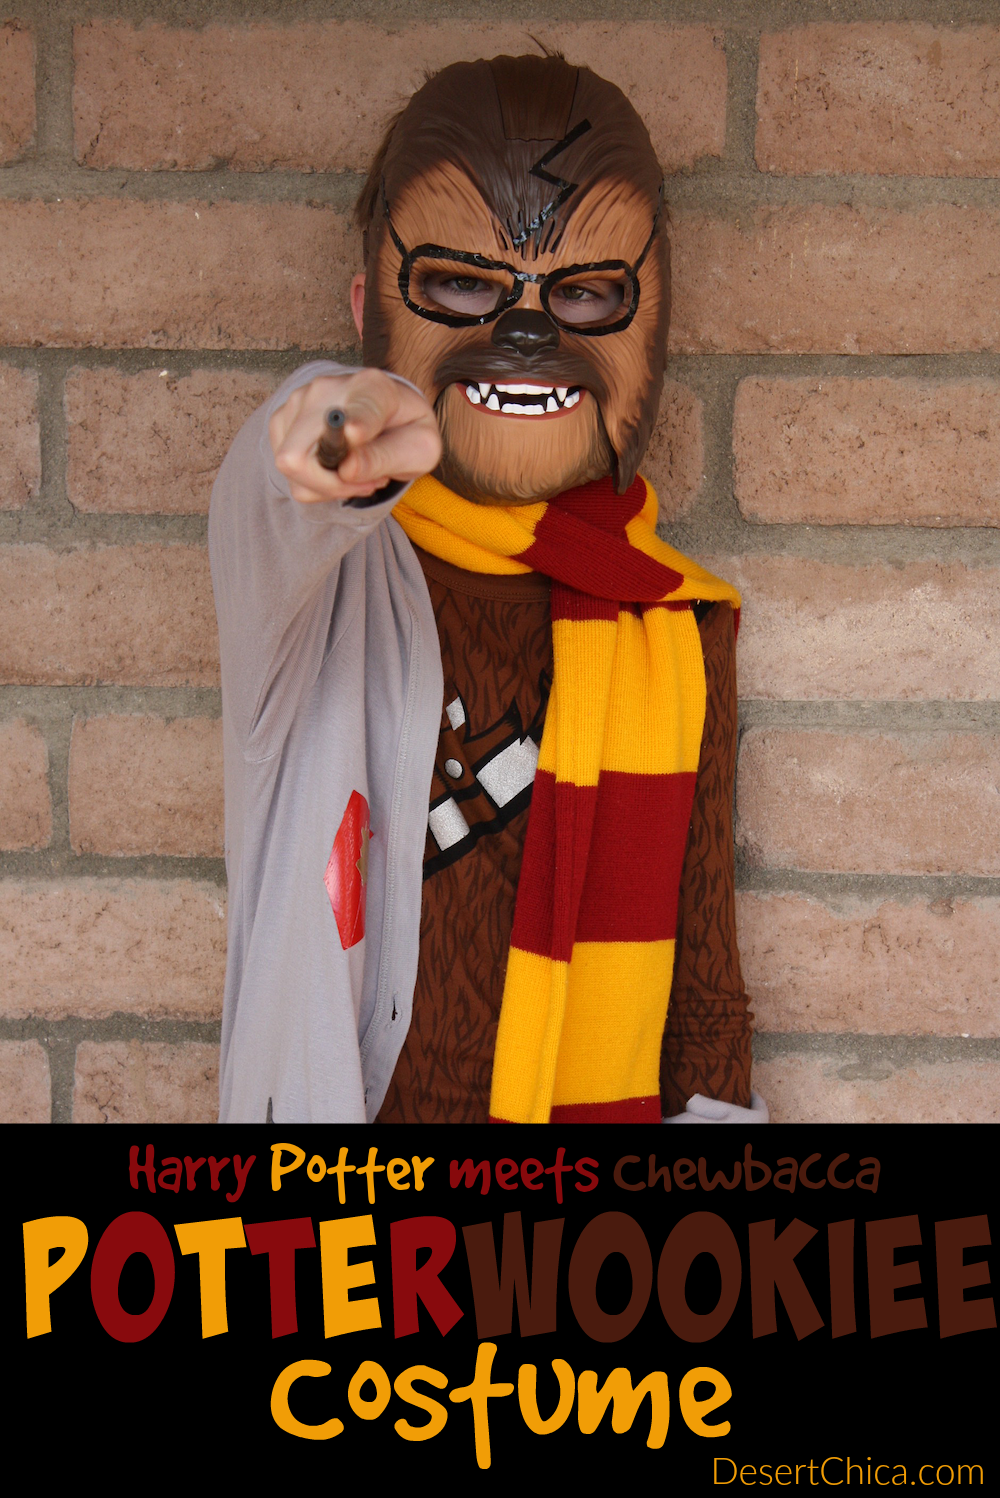 Perfect for Harry Potter and Star Wars fans, a Potterwookiee costume combines Harry Potter with Chewbacca in the Creature From My Closet Book Series.